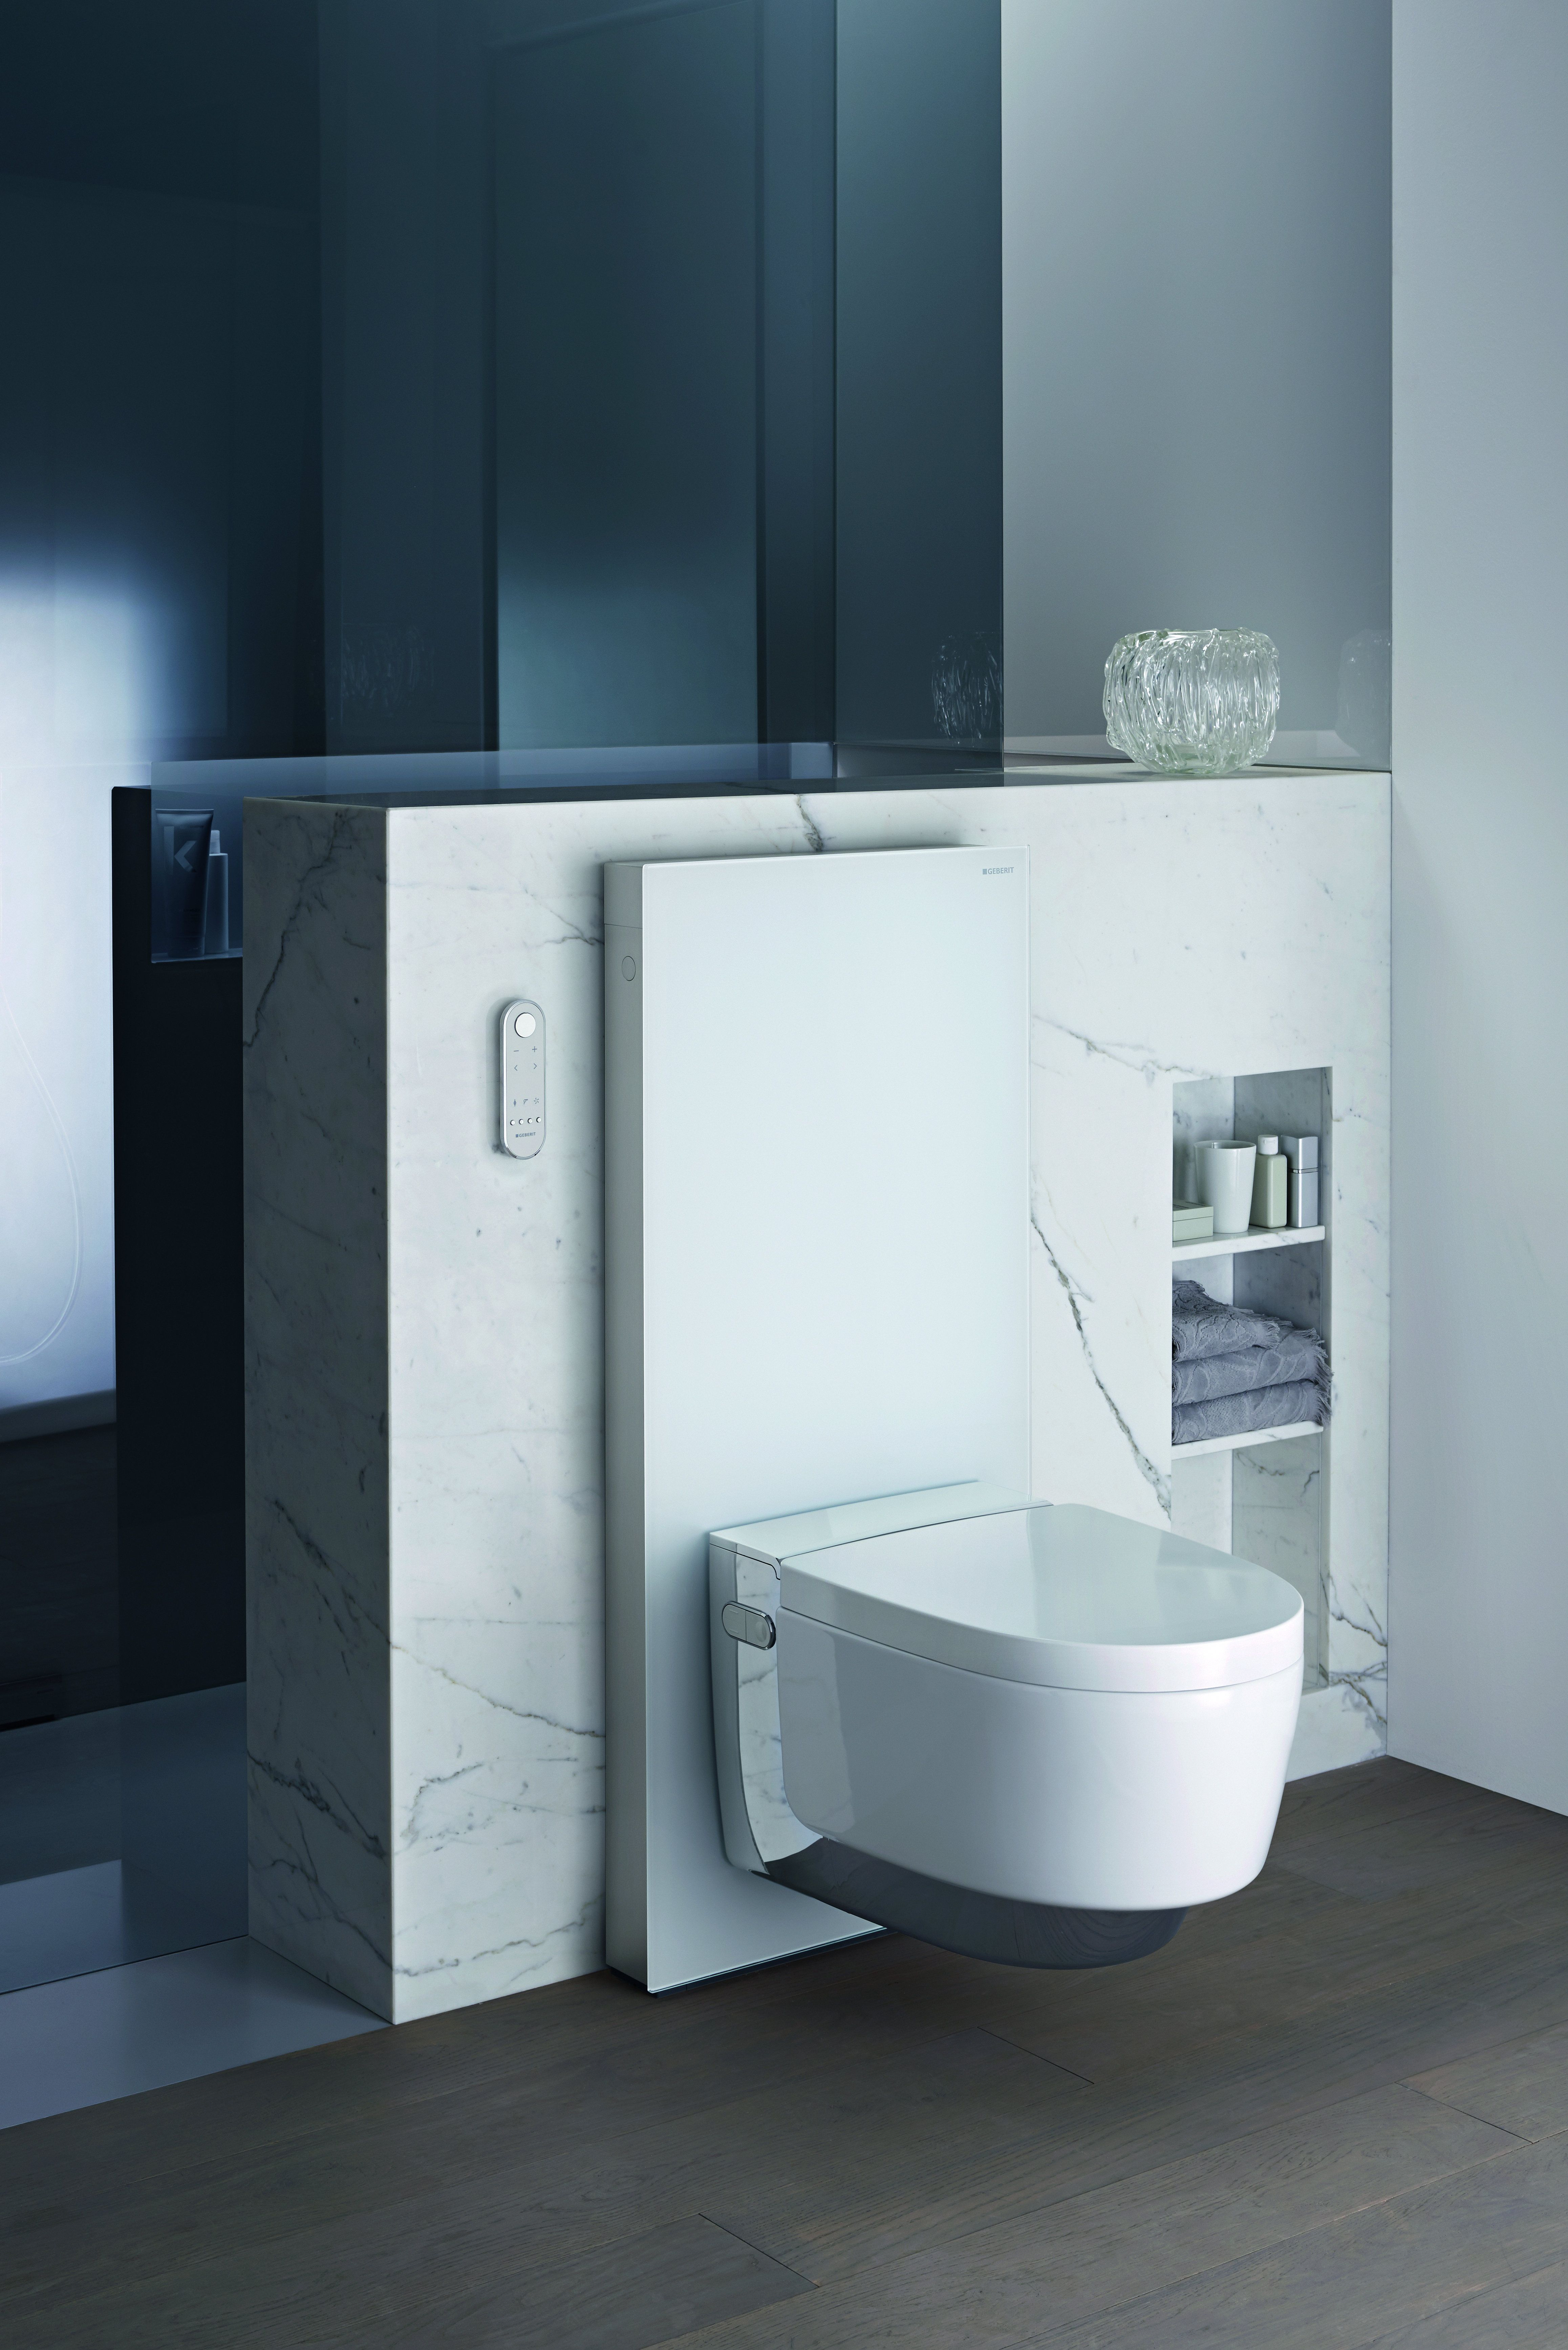 The Geberit AquaClean Mera features the very latest in toilet ...